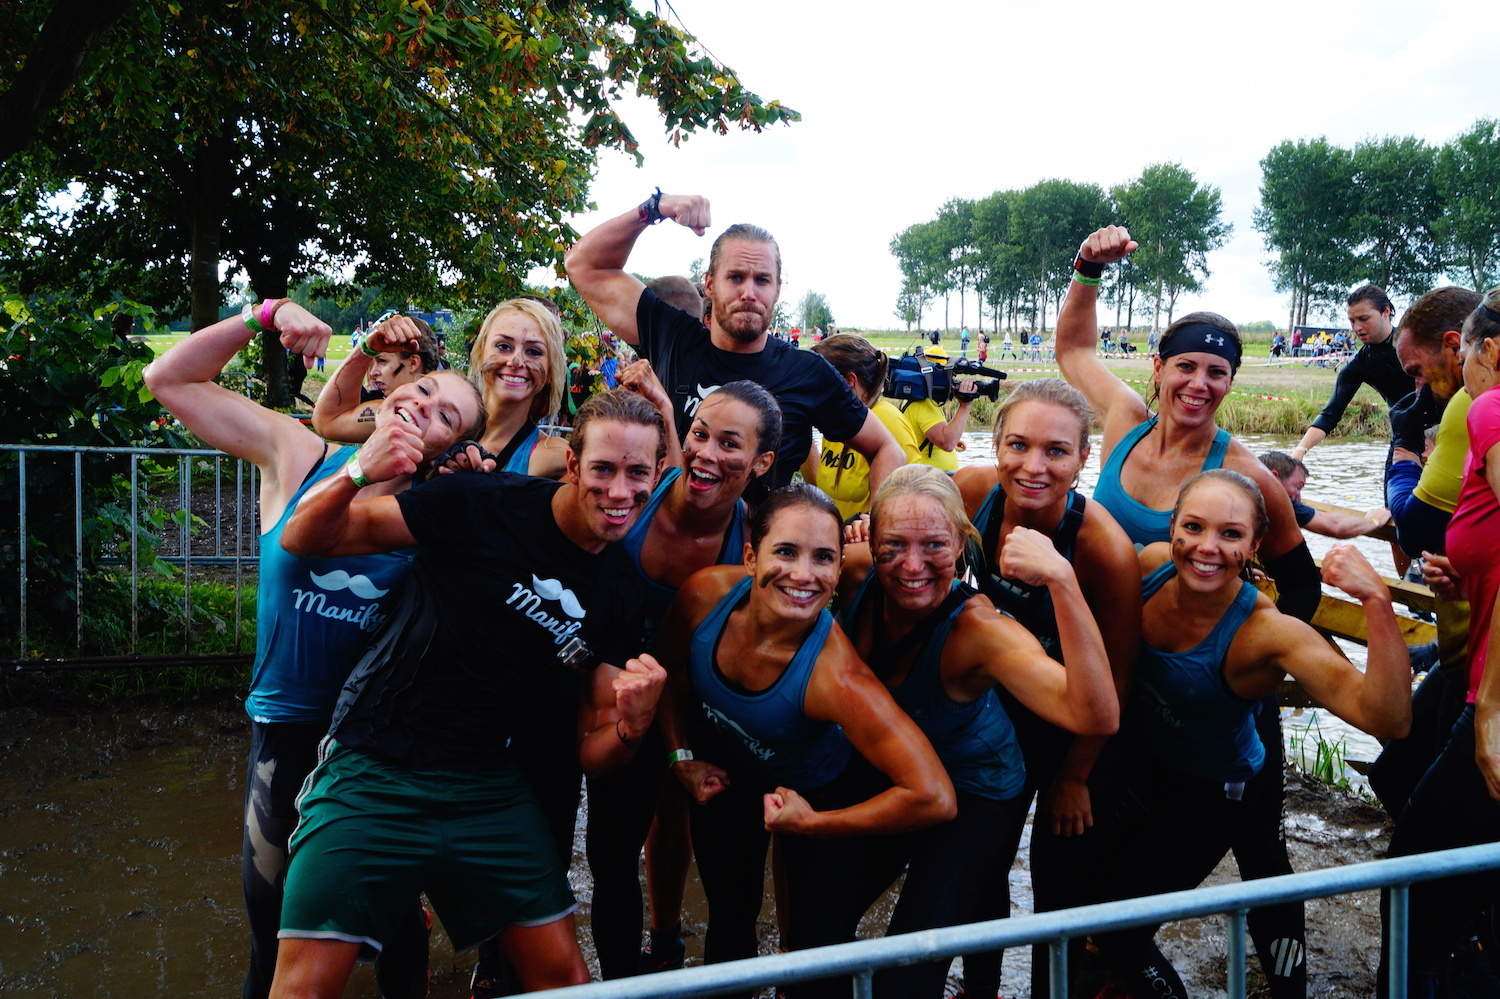 Manify Fitgirls Mud Masters - 10